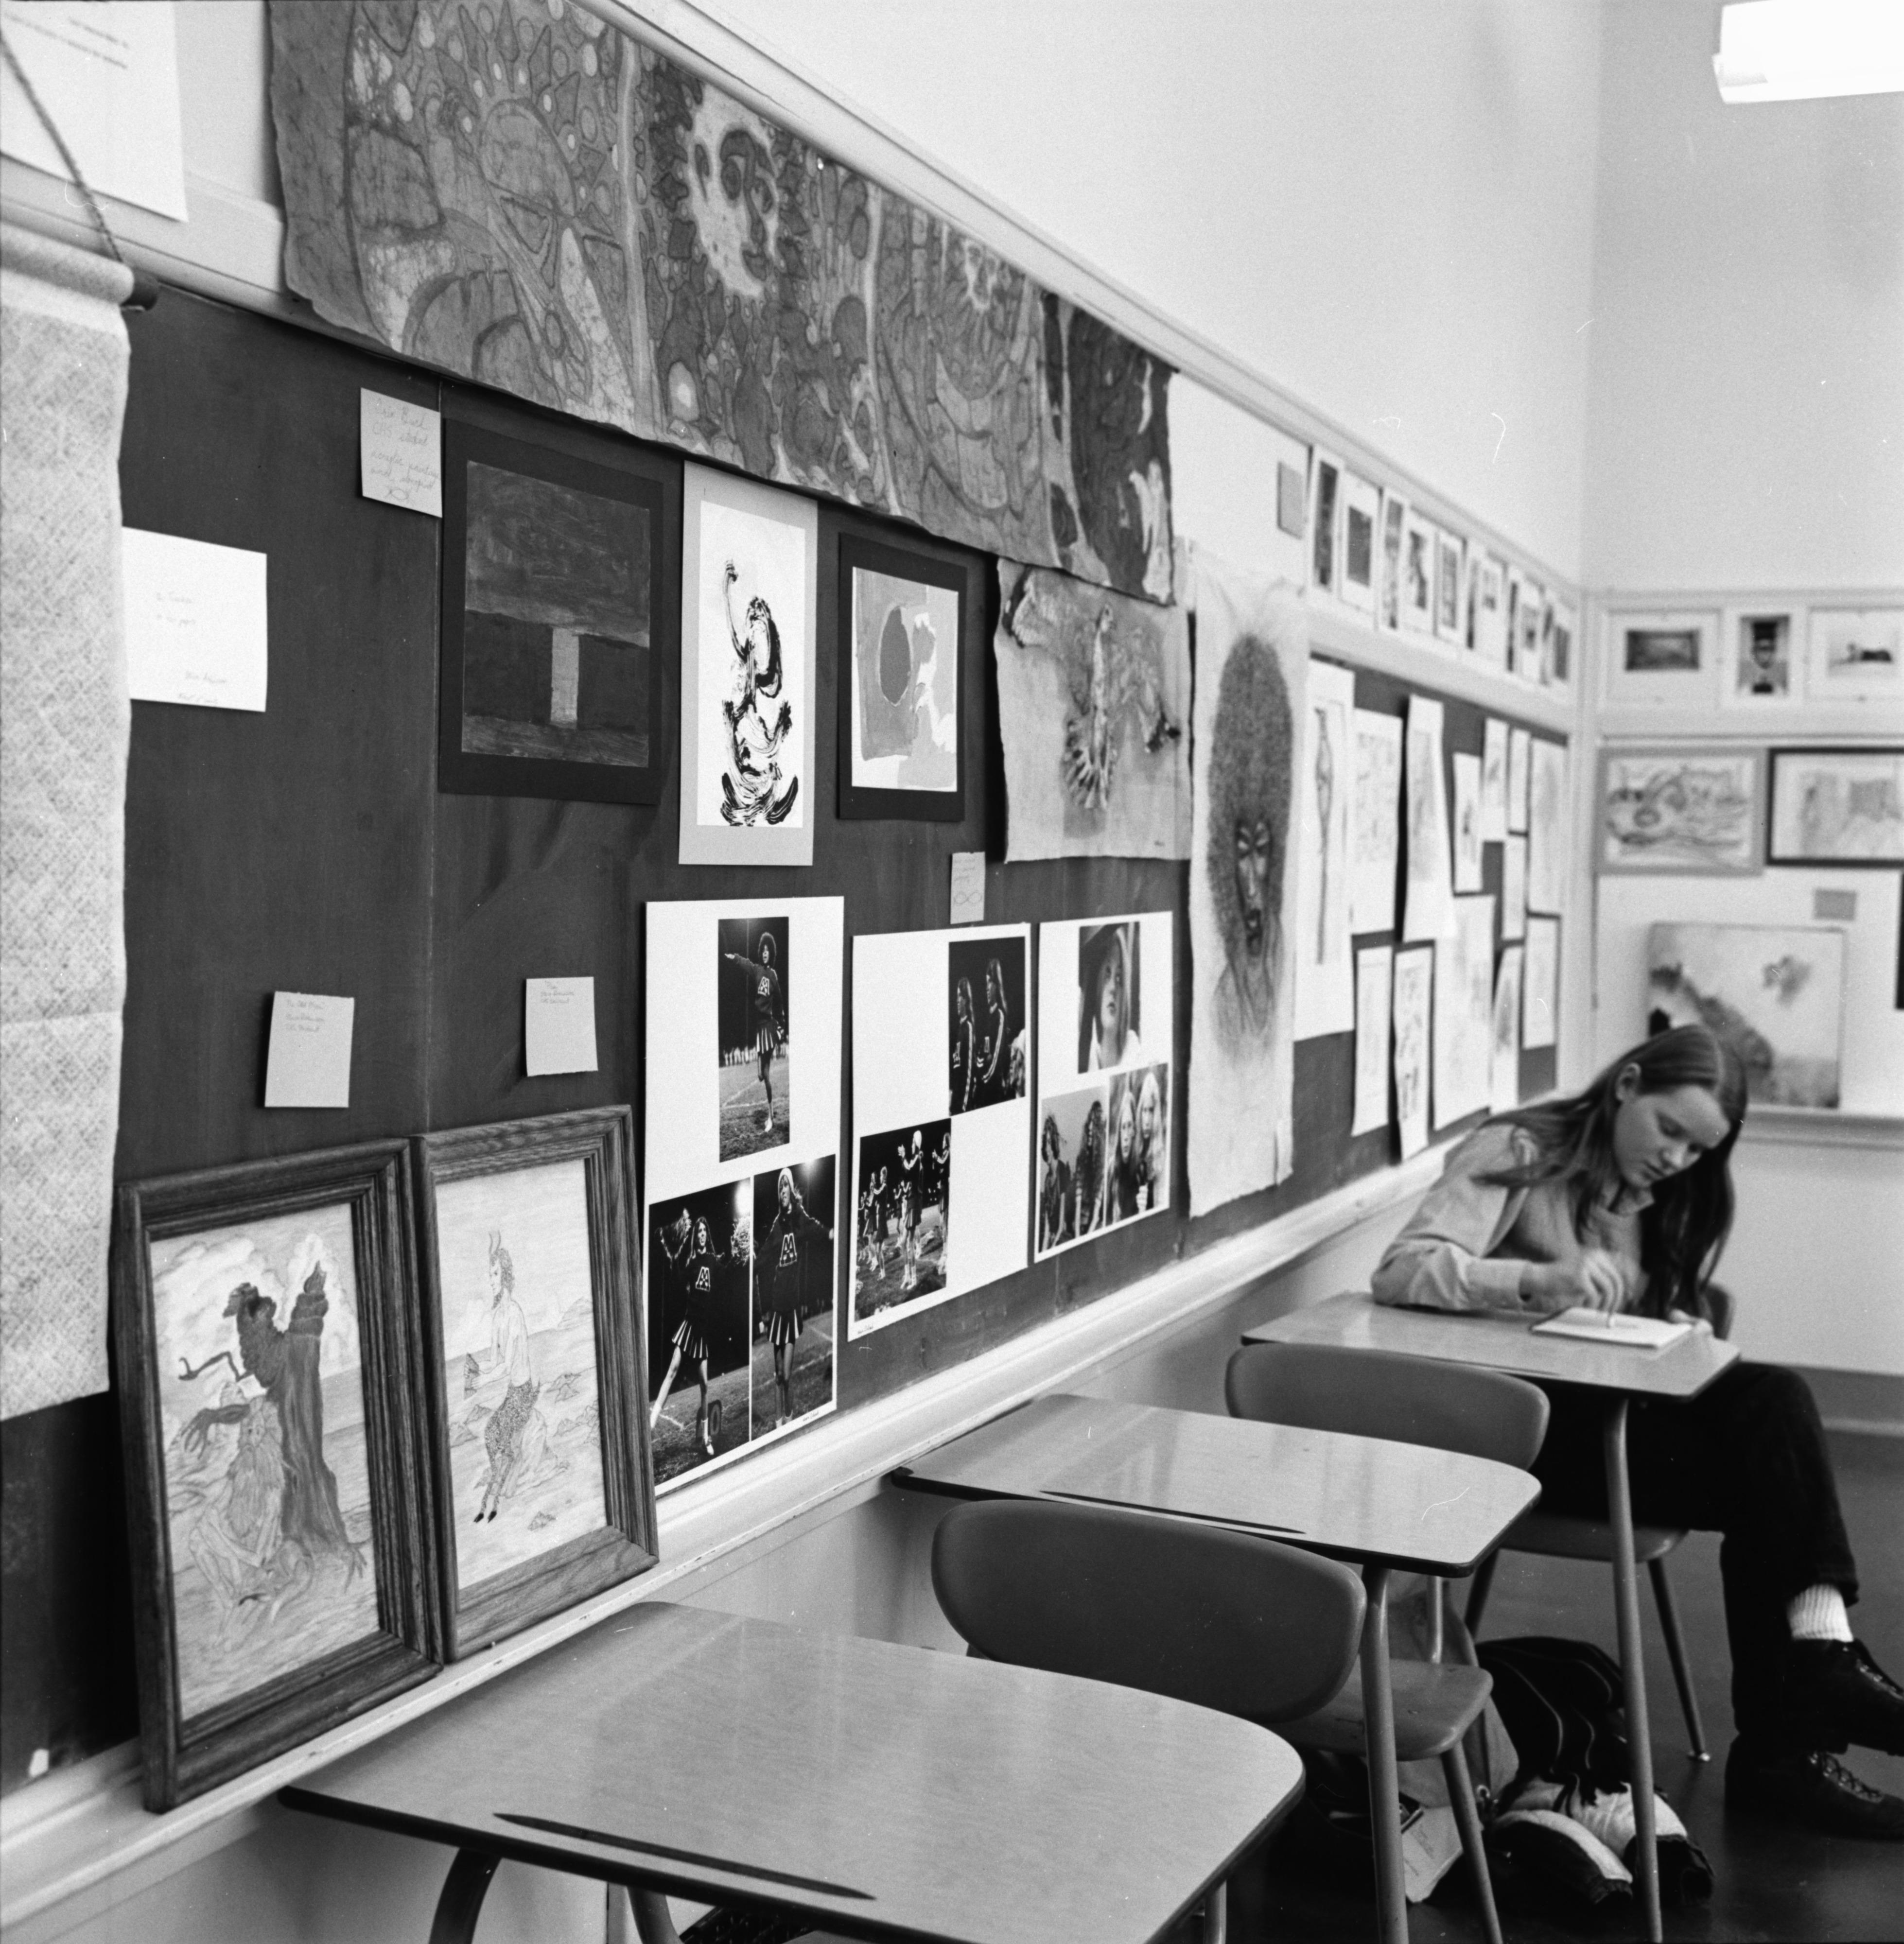 Community High Art Show, December 1972 image